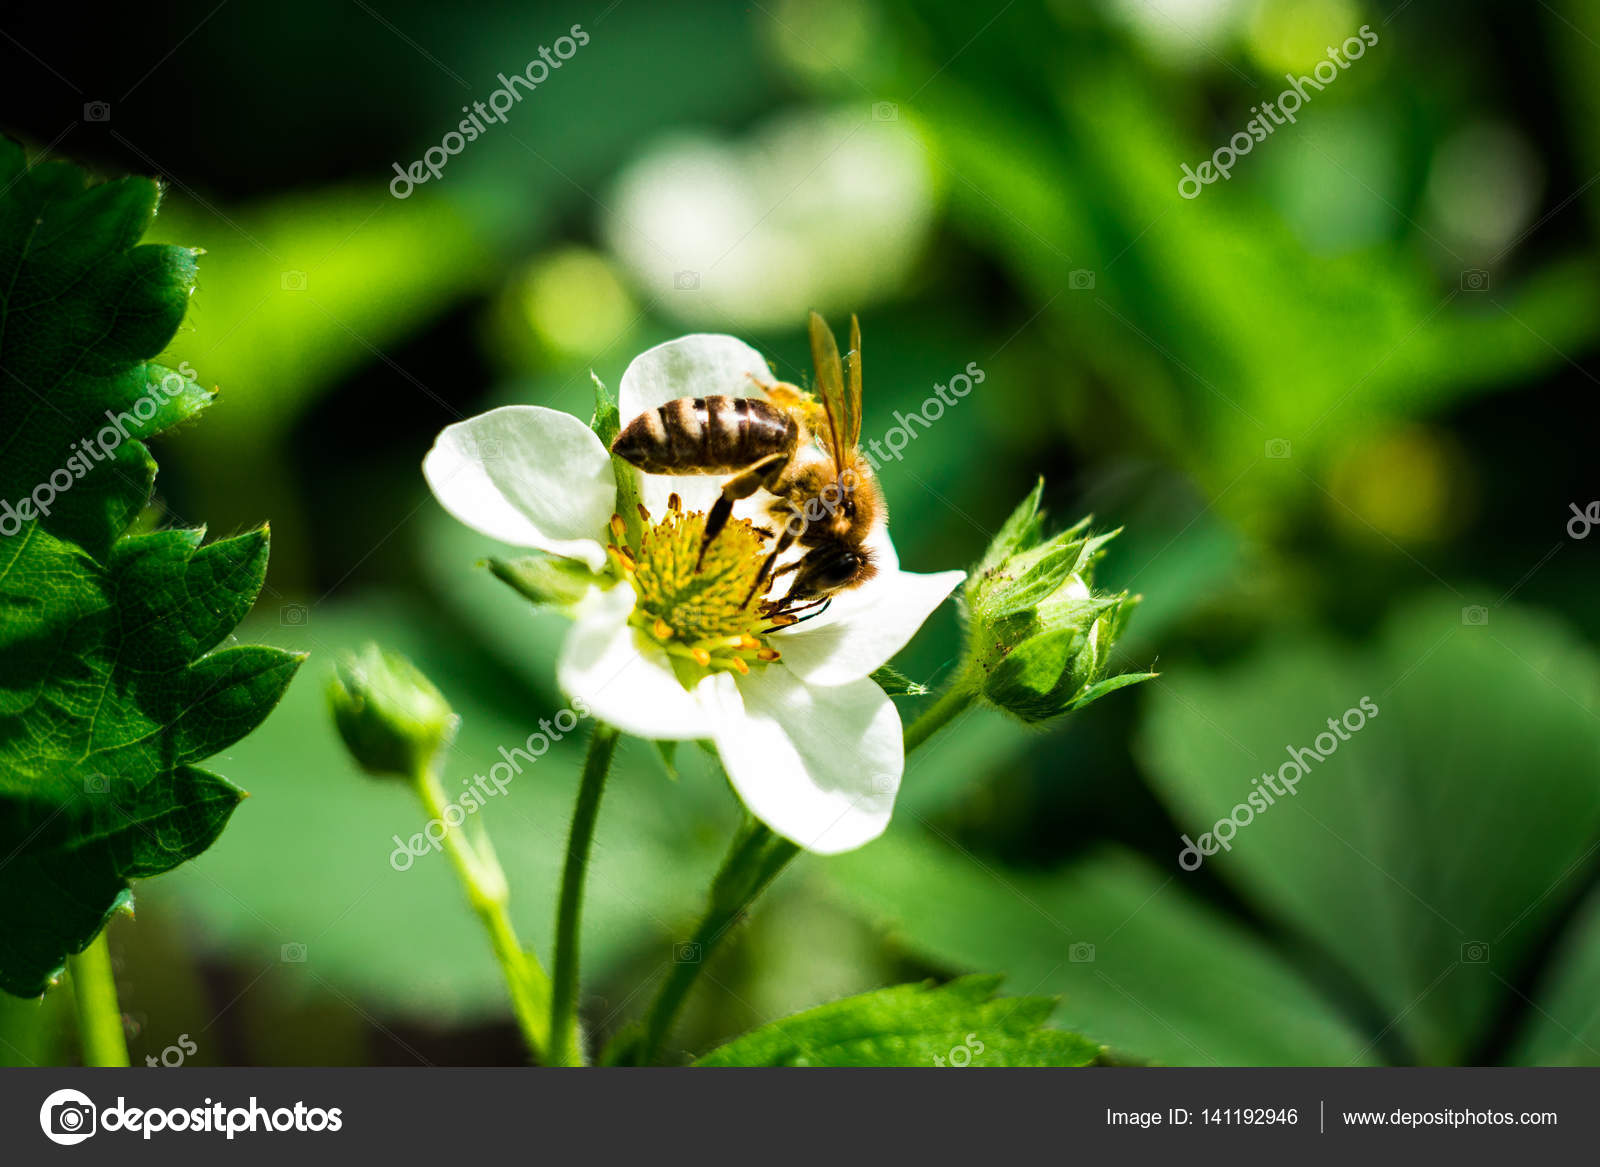 Bee On A Flowerwhite Flower Strawberrystrawberry Flower And Leaves